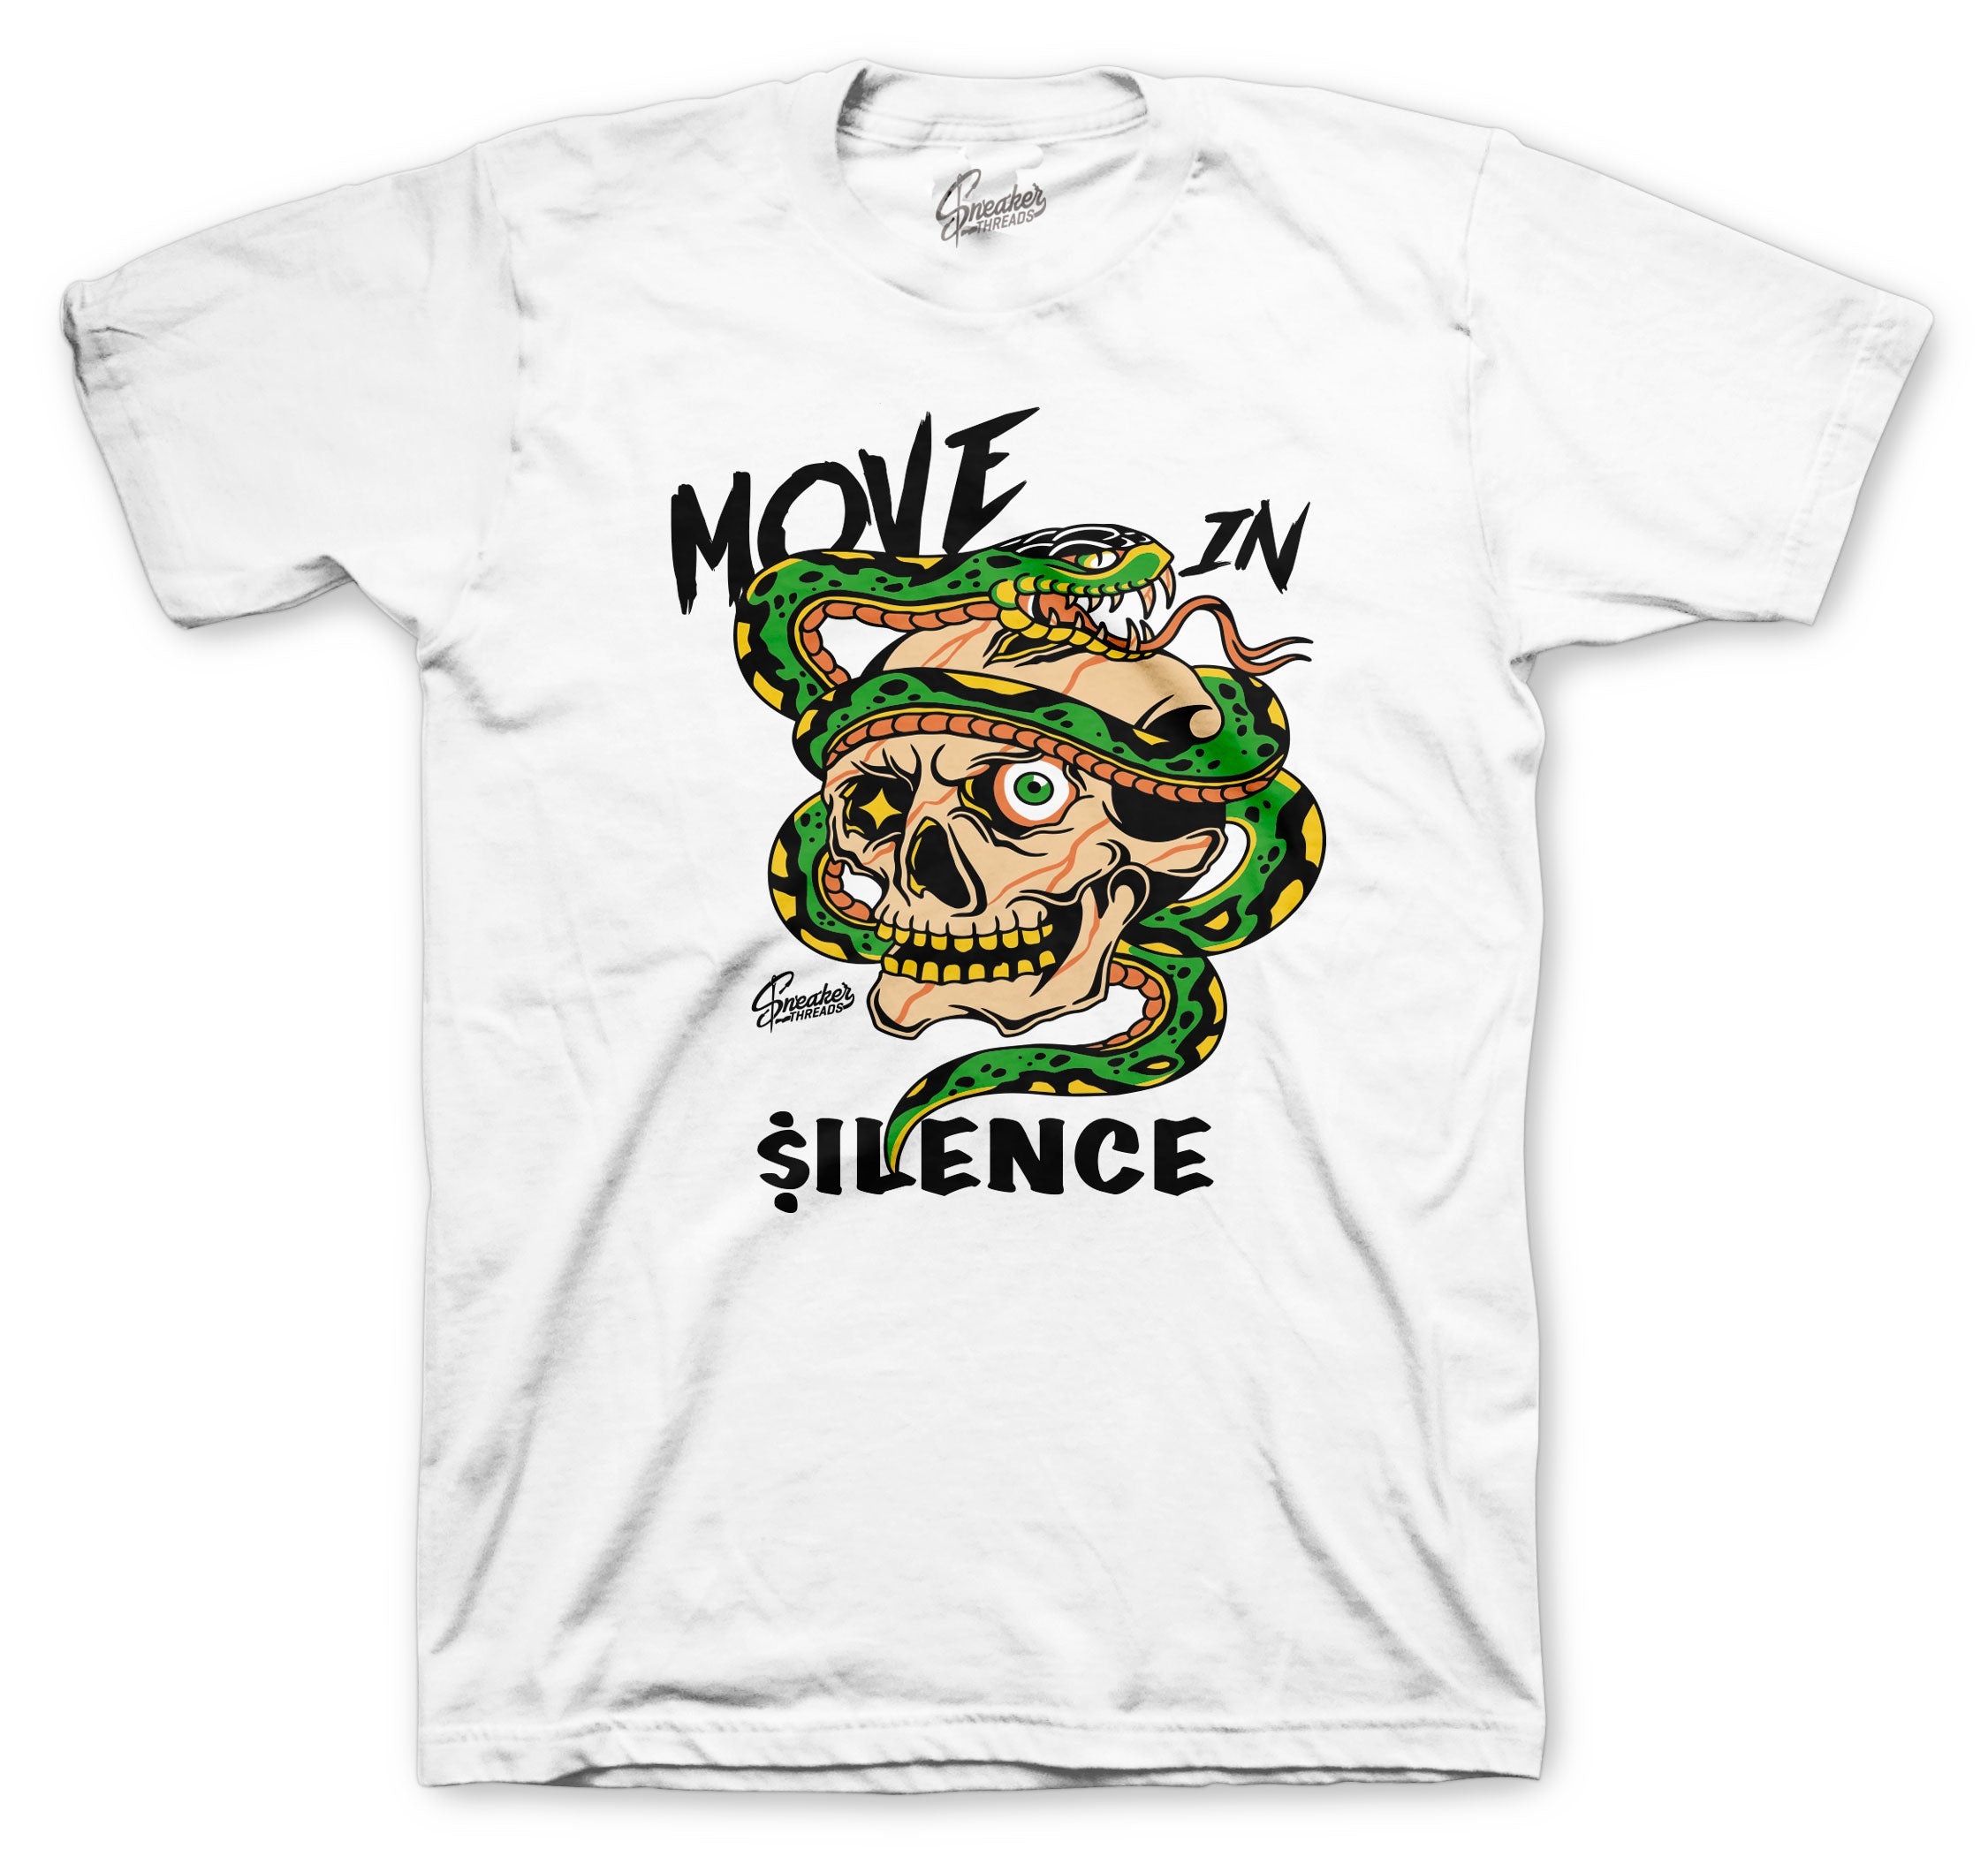 Jordan 10 Seattle Move in Silence Shirt